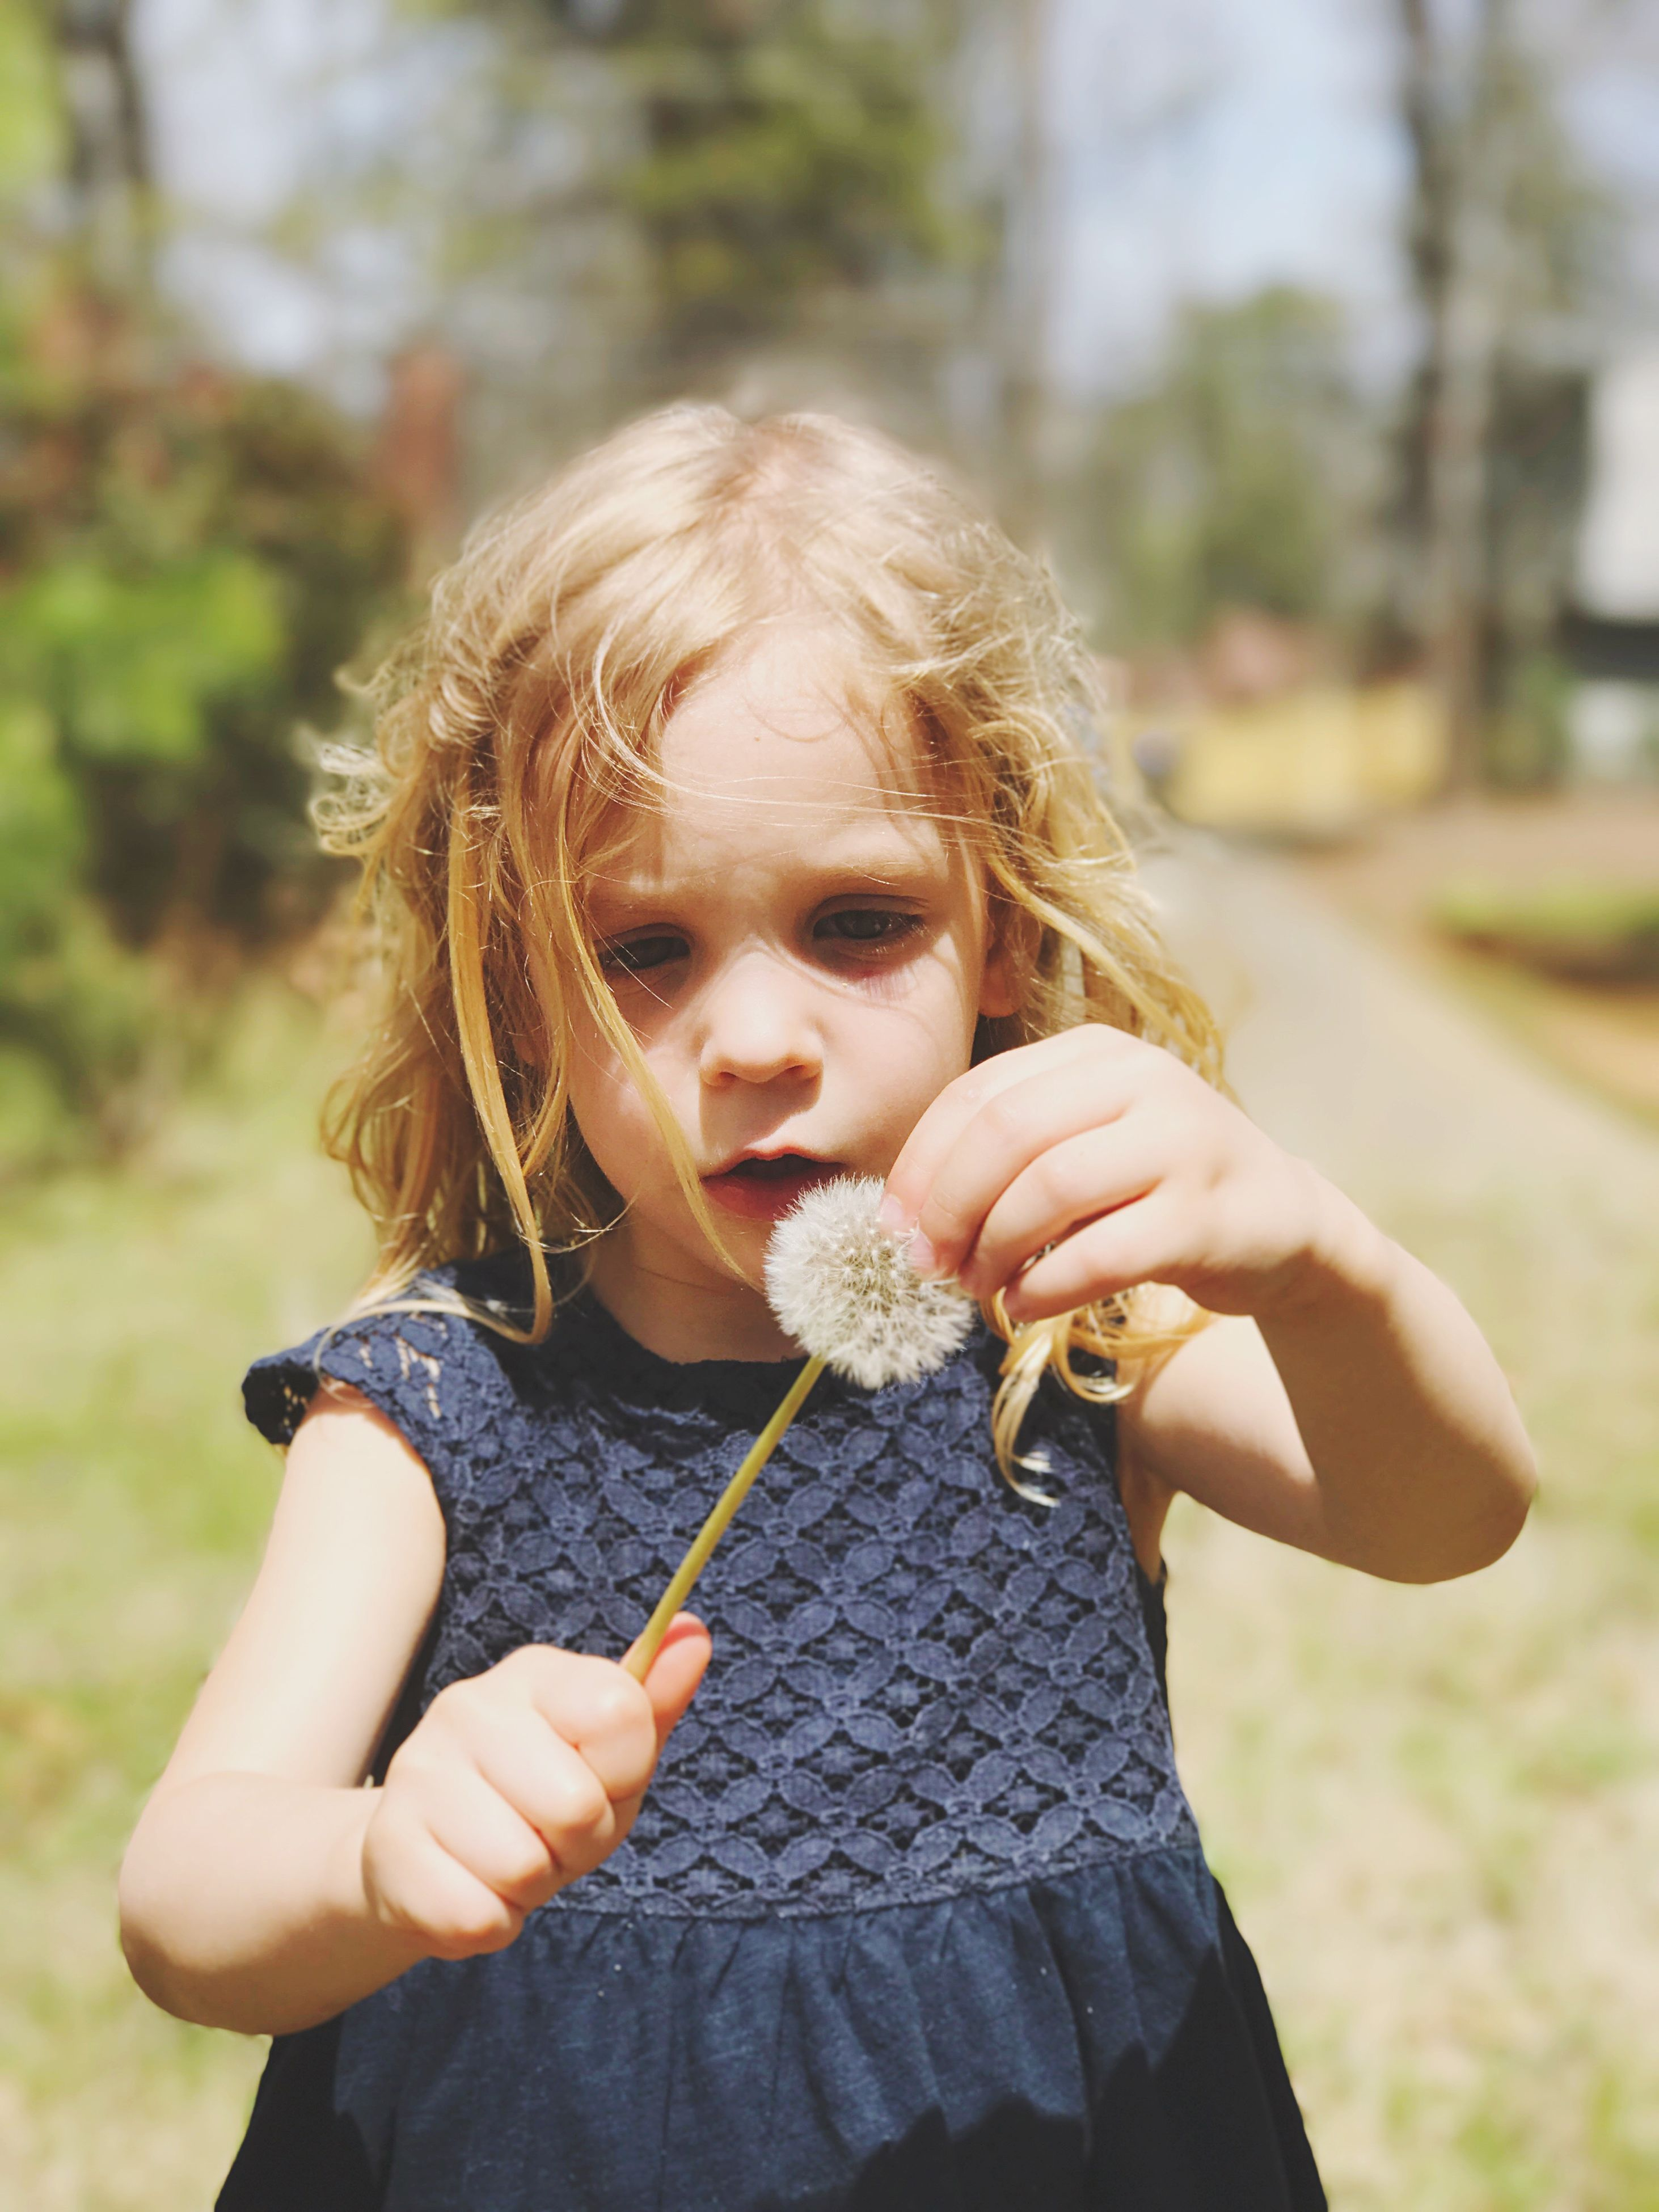 children only, child, one girl only, girls, childhood, holding, one person, waist up, outdoors, front view, blond hair, only girls, portrait, people, day, yard, nature, close-up